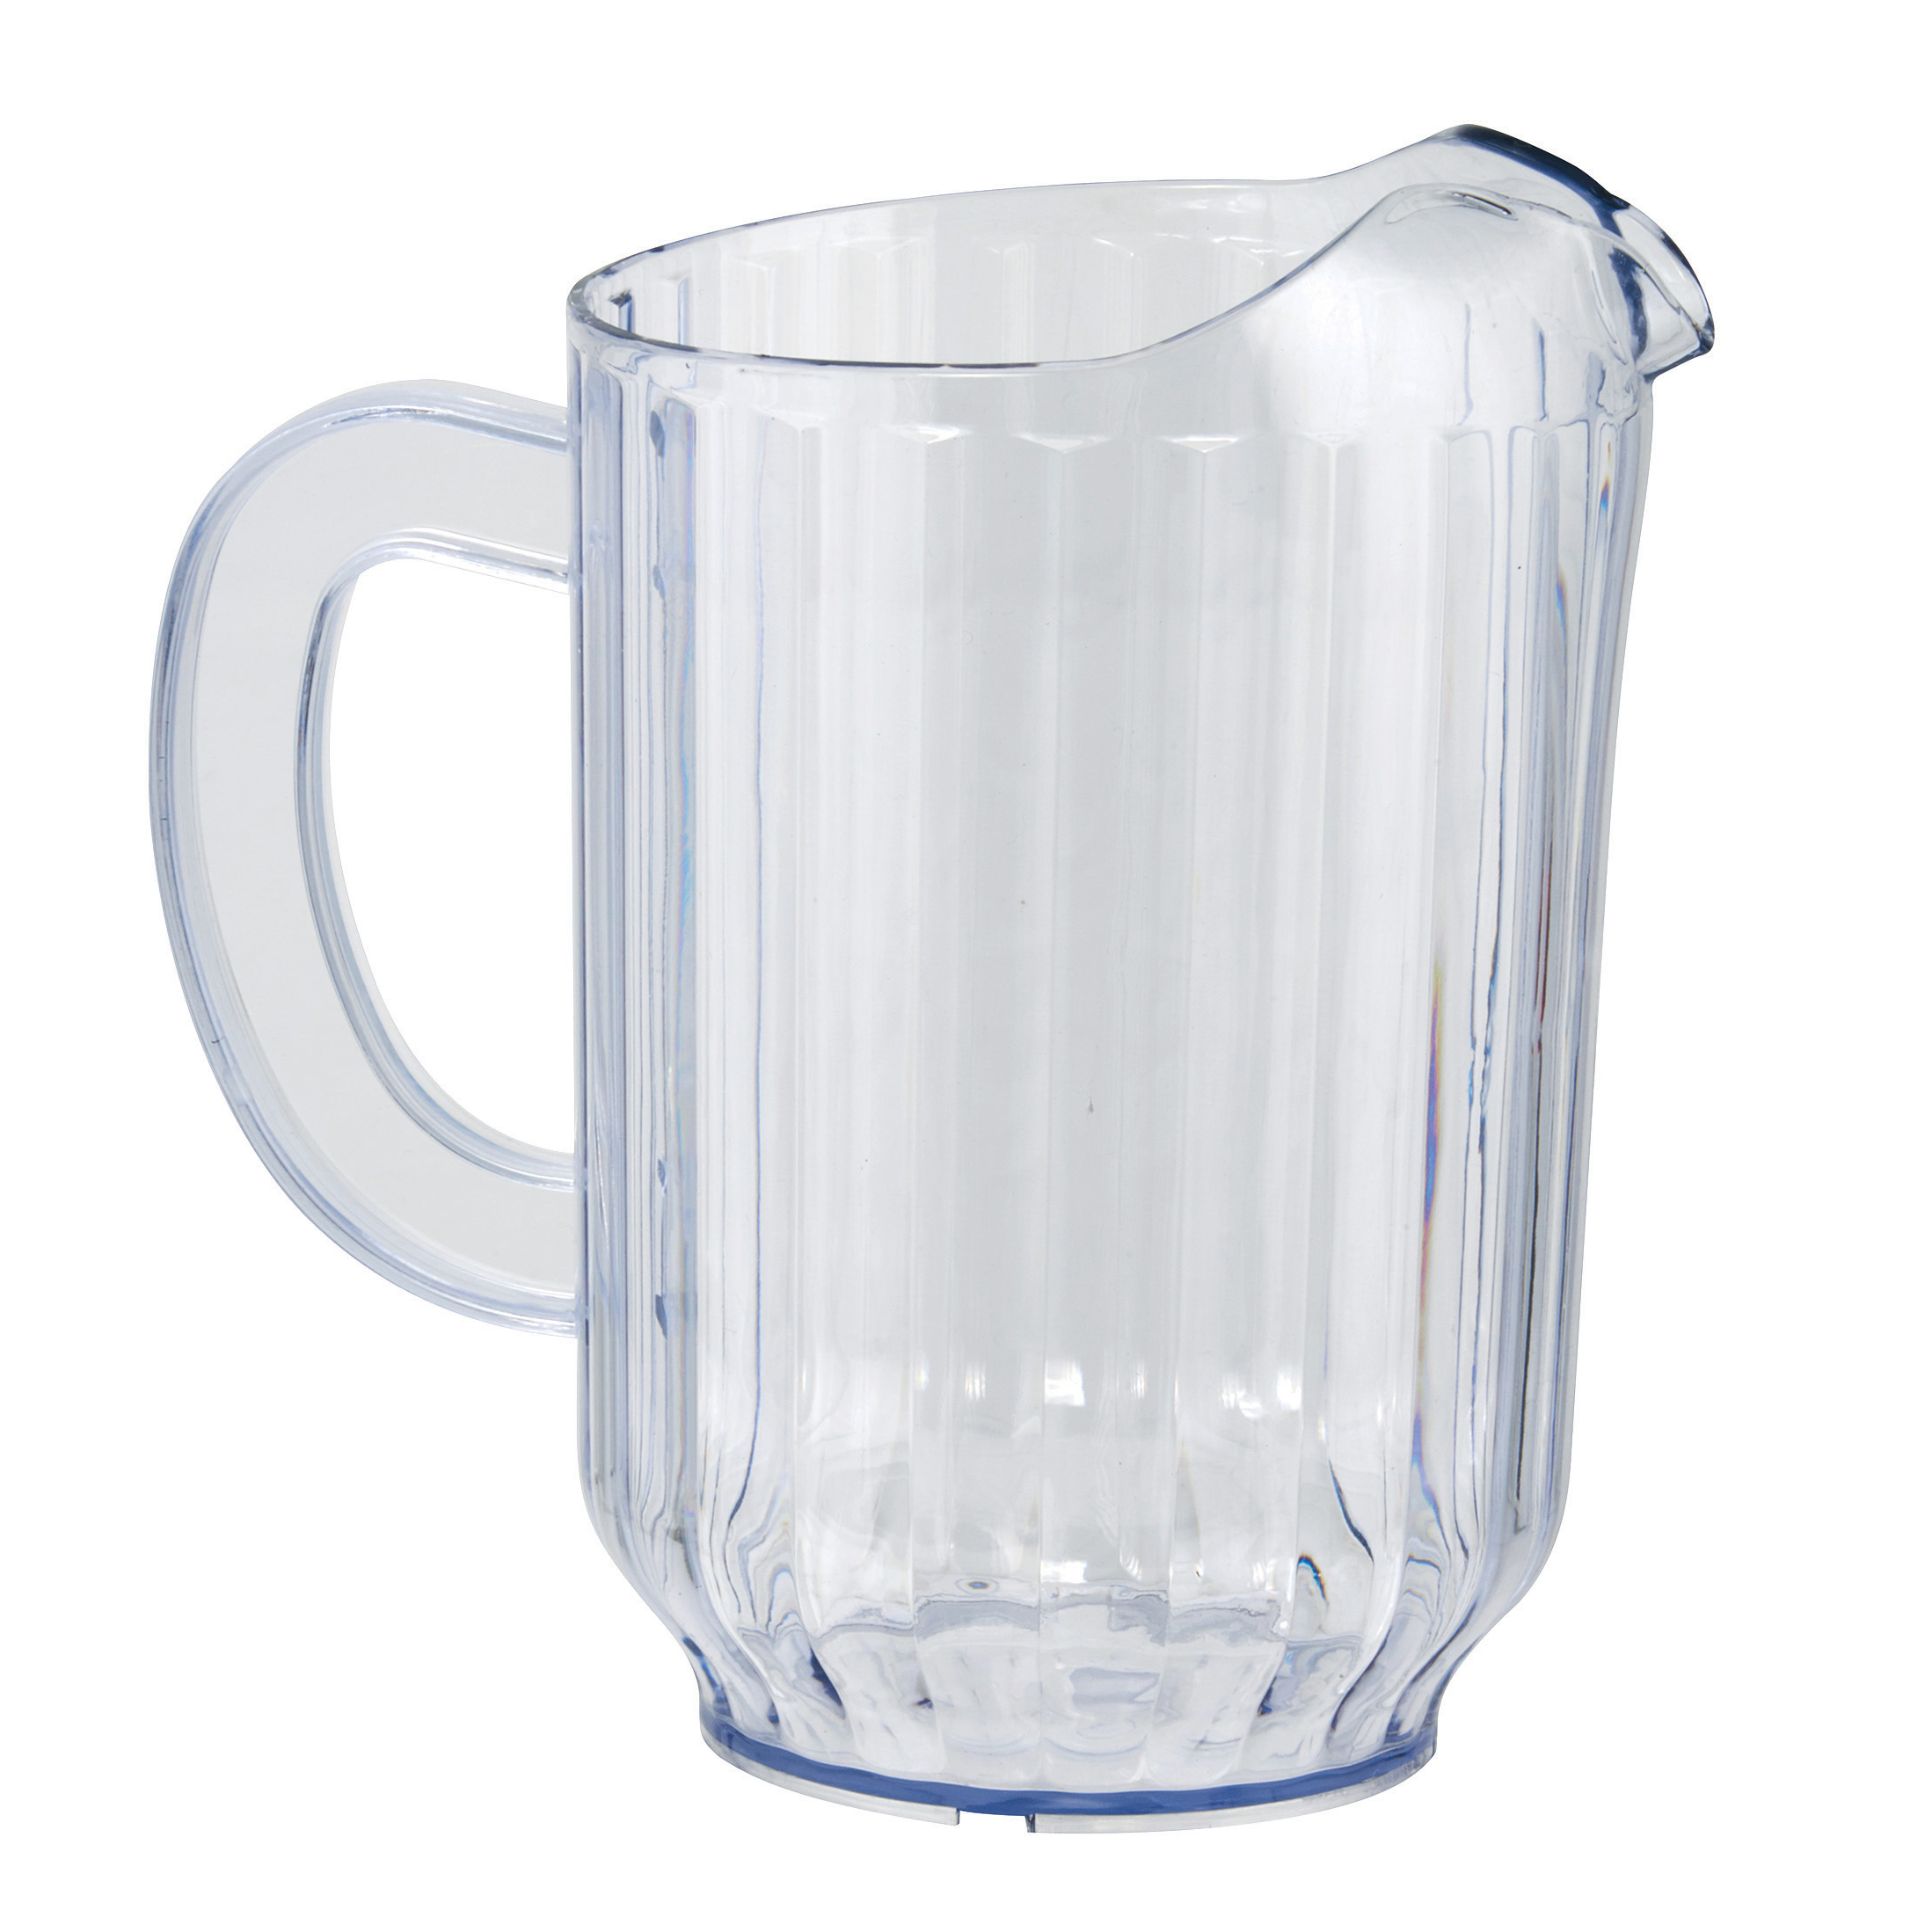 Winco WPS-60 pitcher, plastic